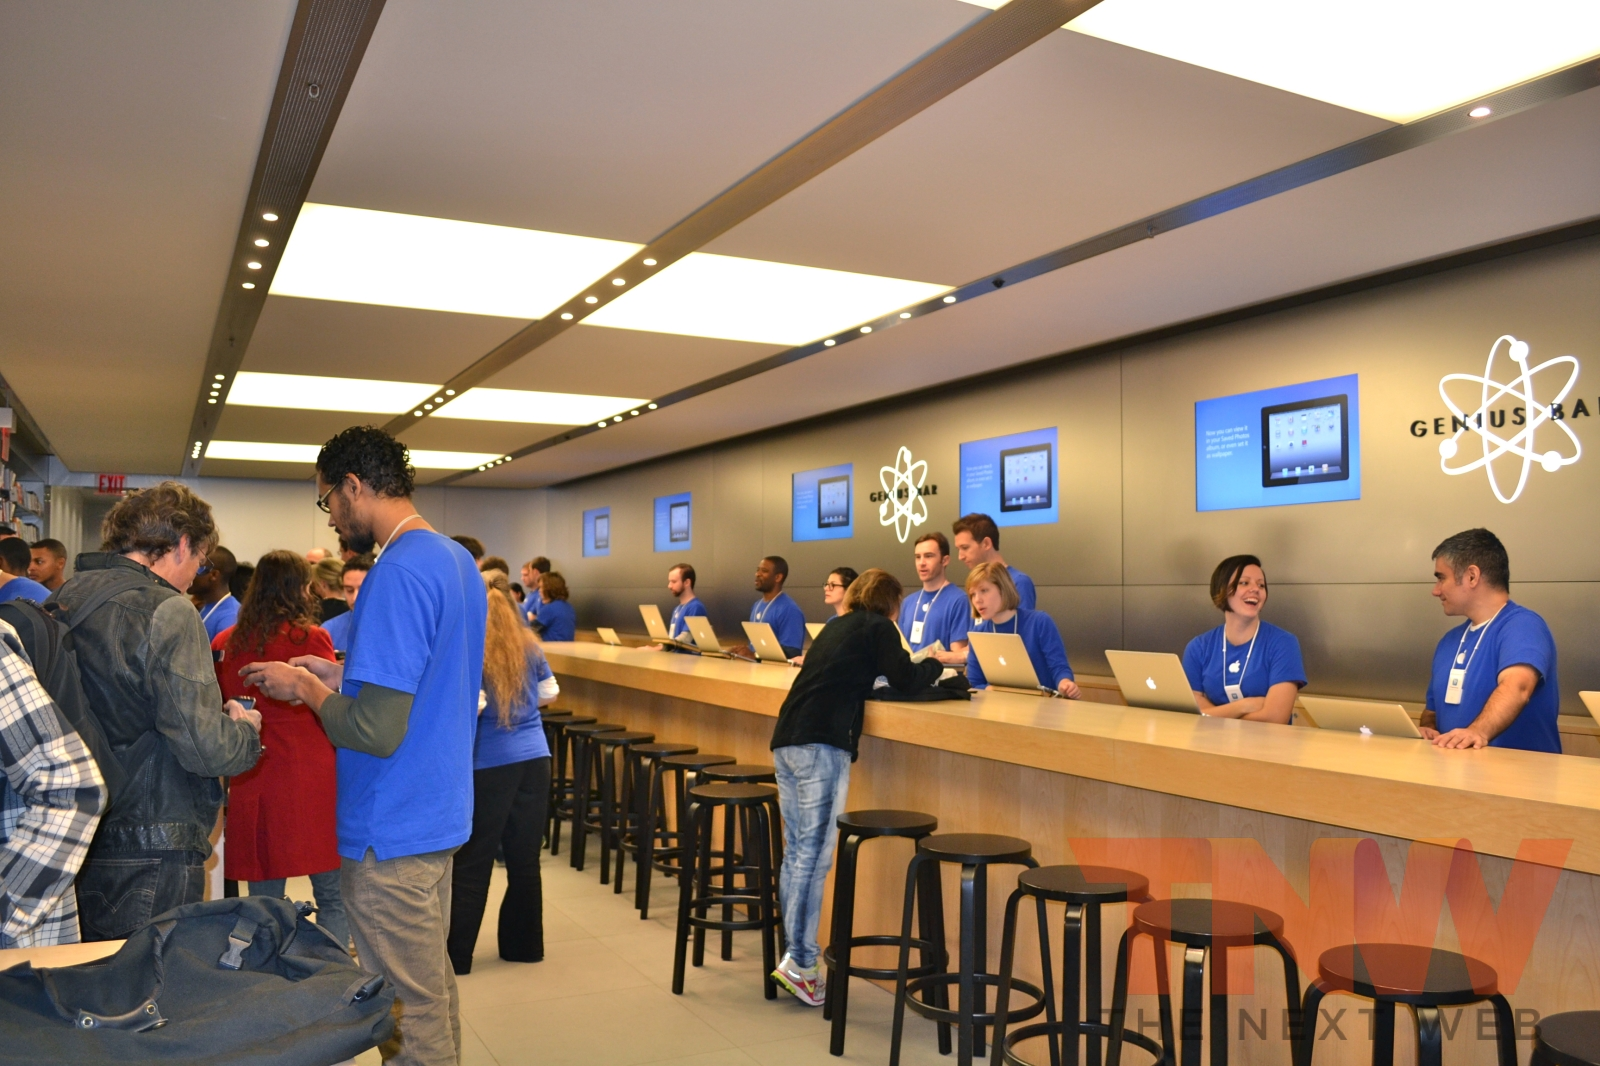 Apple updates 'Apple Store' app to add EasyPay and Personal Pickup features